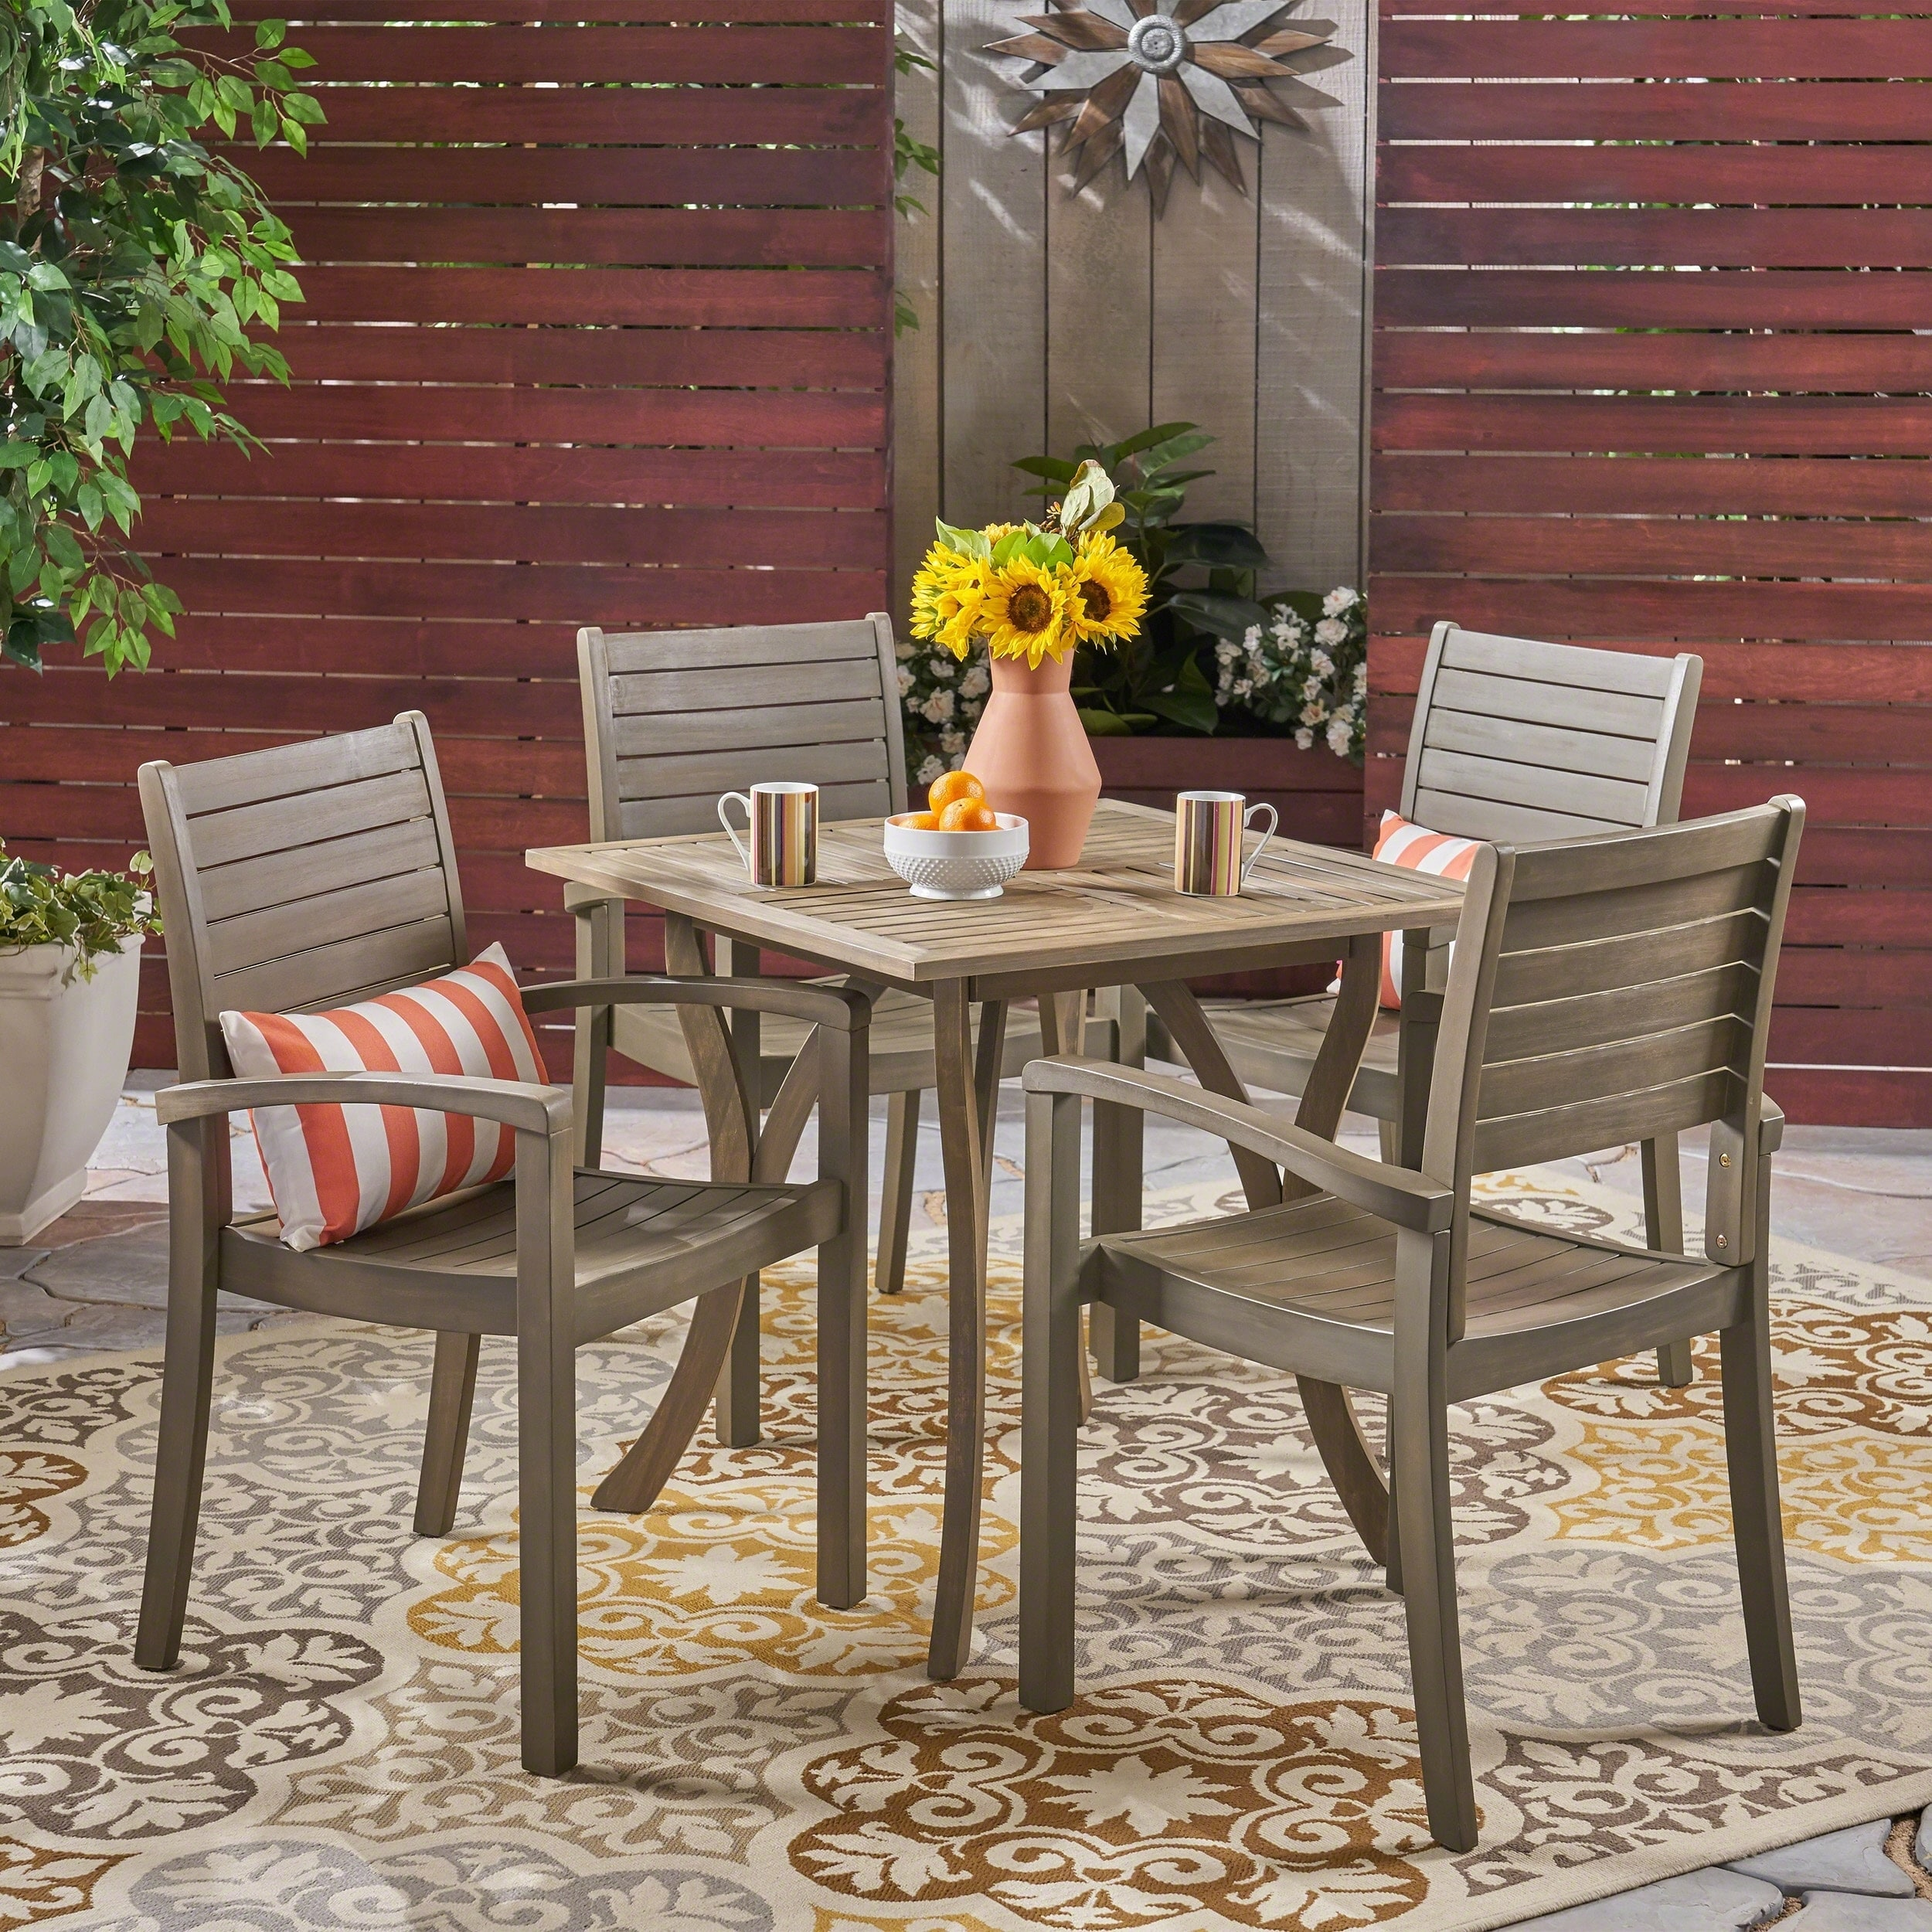 Christopher Knight Home York Outdoor 4-Seater Square Acacia Wood Dining Set by